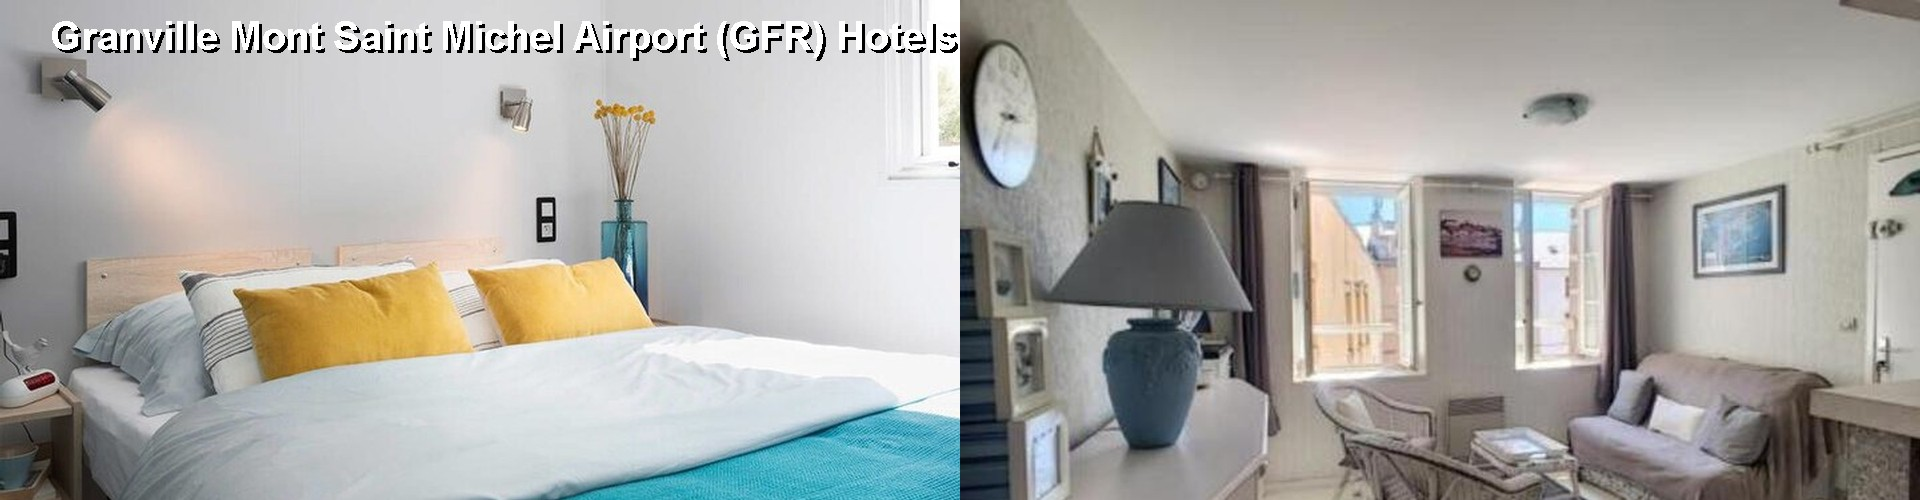 4 Best Hotels near Granville Mont Saint Michel Airport (GFR)